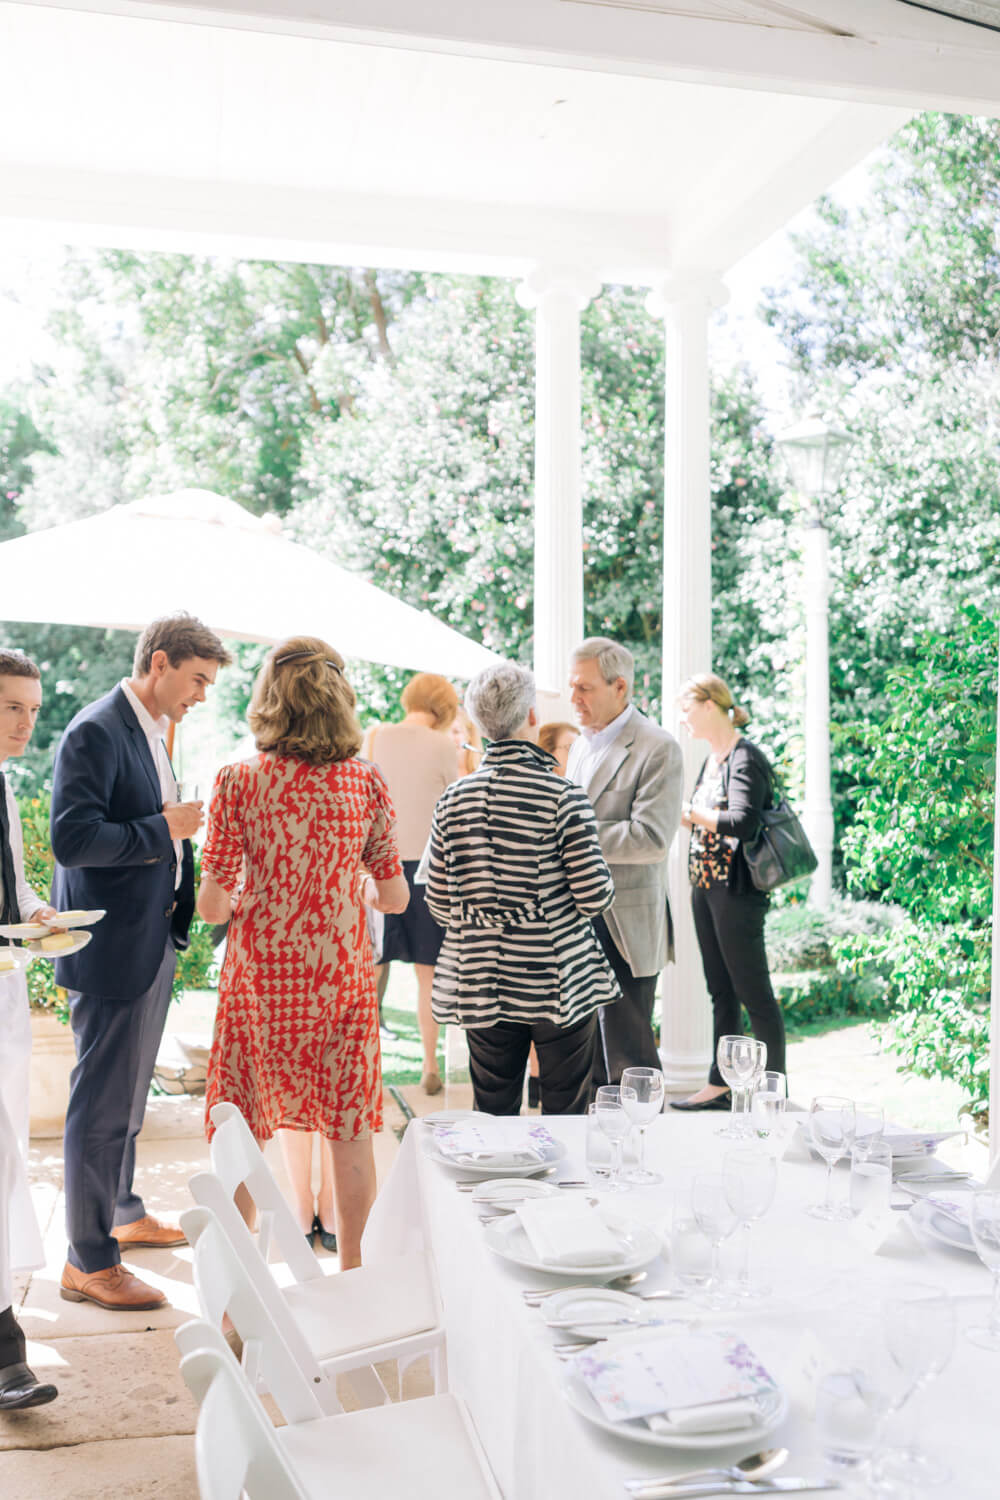 Rosemont, Woollahra event photography at a charity garden party for St Vincent's hospital